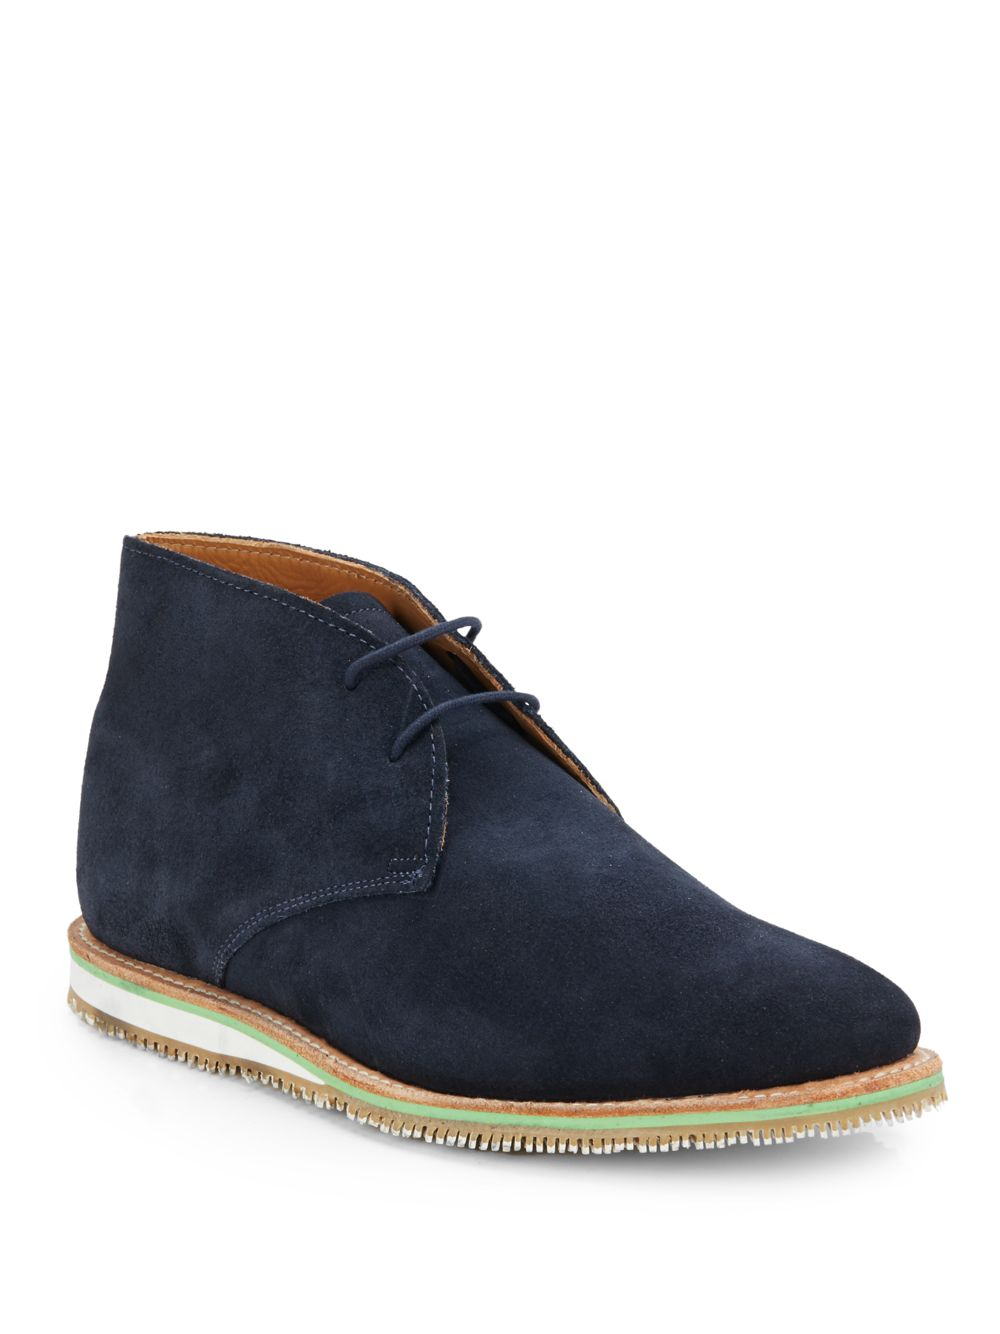 walk nashville suede chukka boots in blue for